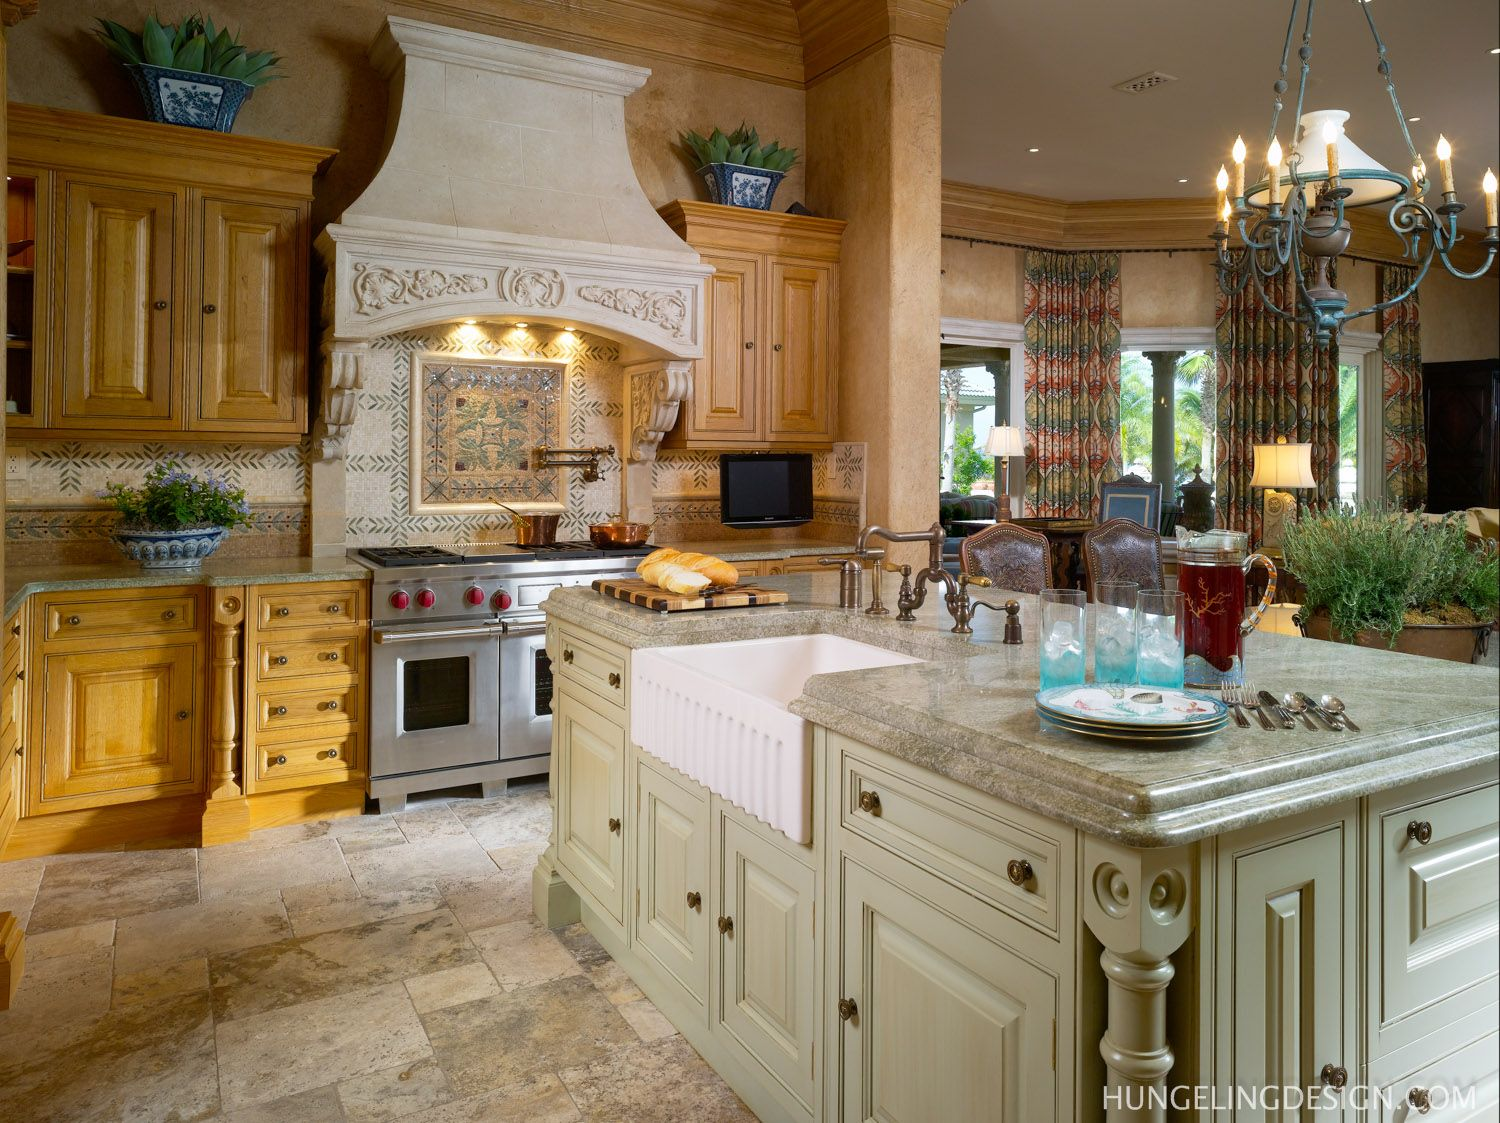 Luxury Kitchen Design In Palmetto Bluff Sc Featuring Clive Christian Designer Kitchen